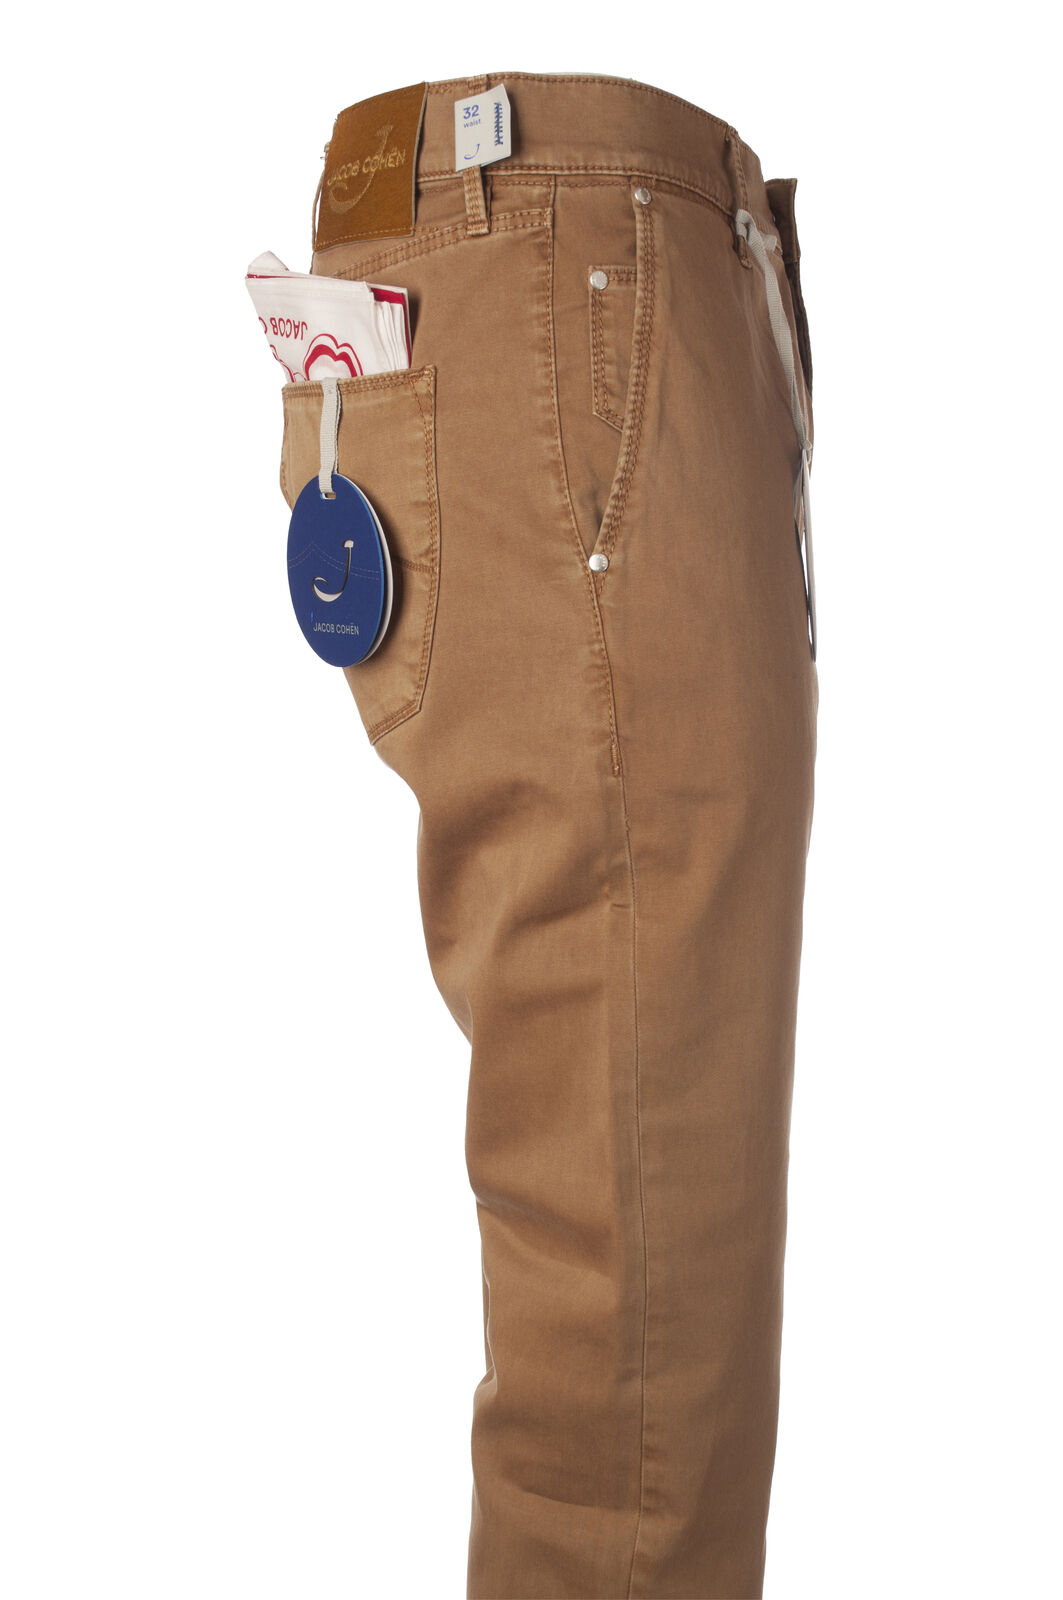 Jacob Cohen - Pants-Pants - Man - Beige - 5971312C191444